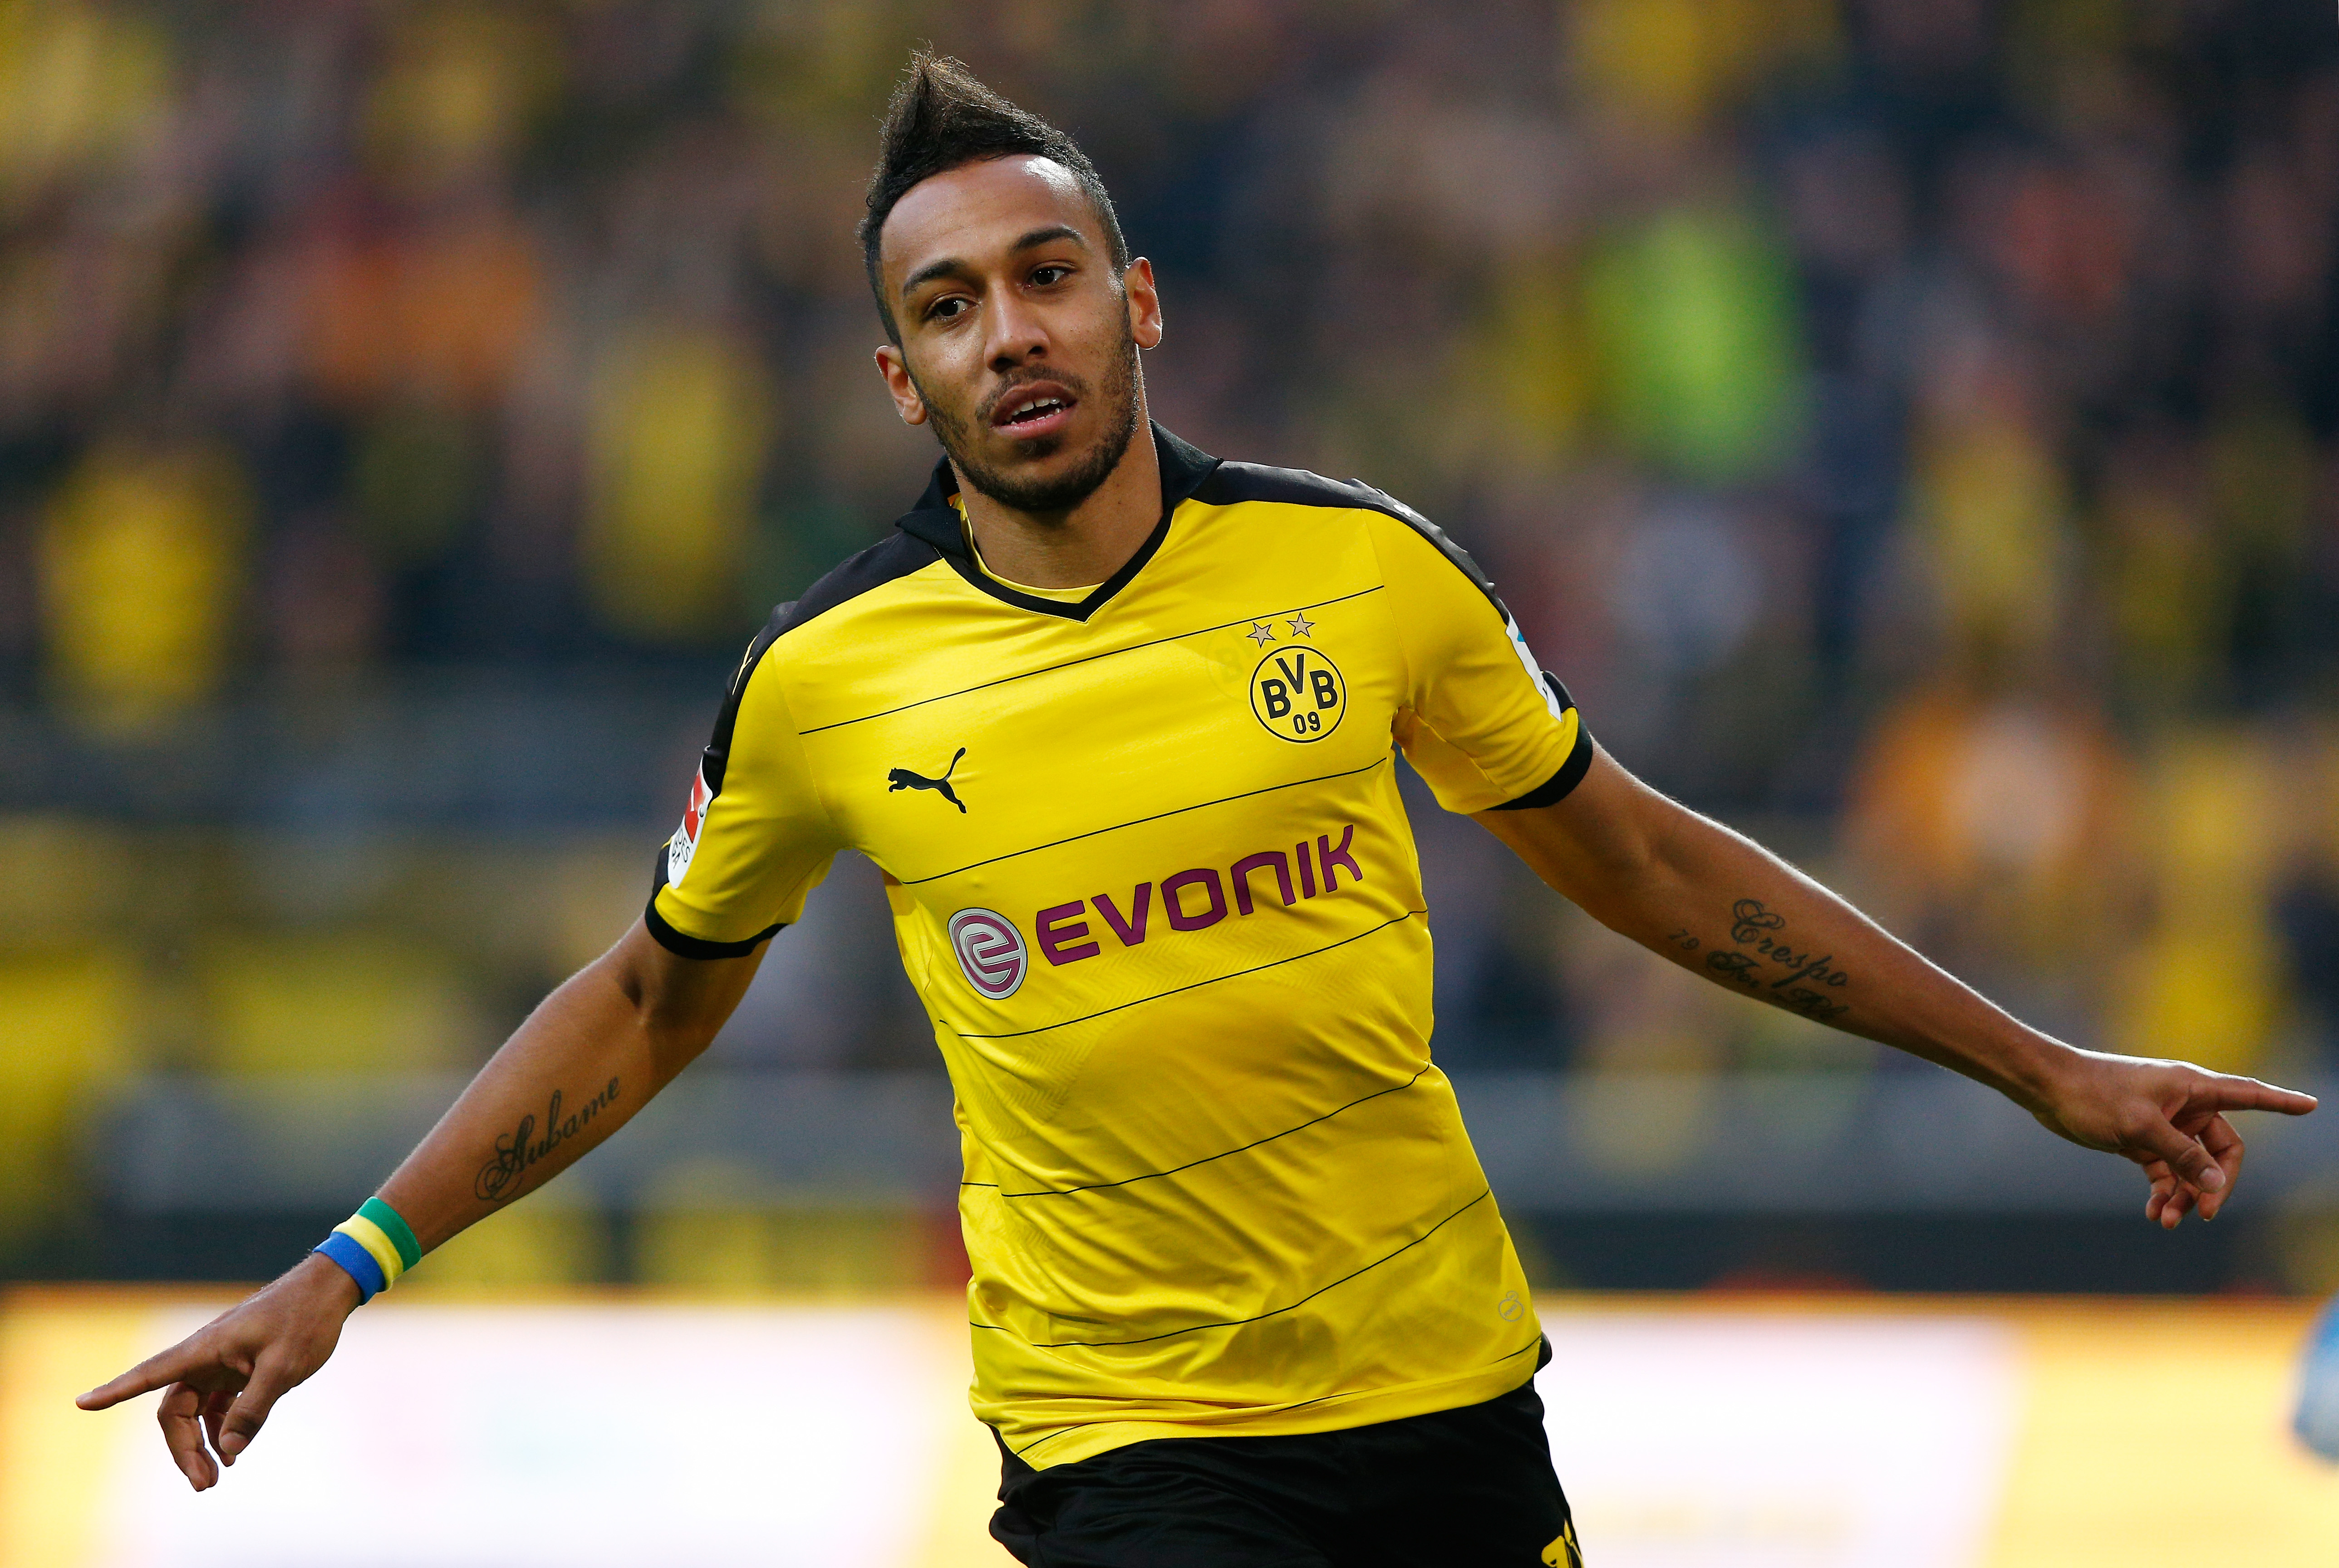 Could Manchester United sign Pierre-Emerick Aubameyang from Borussia Dortmund?